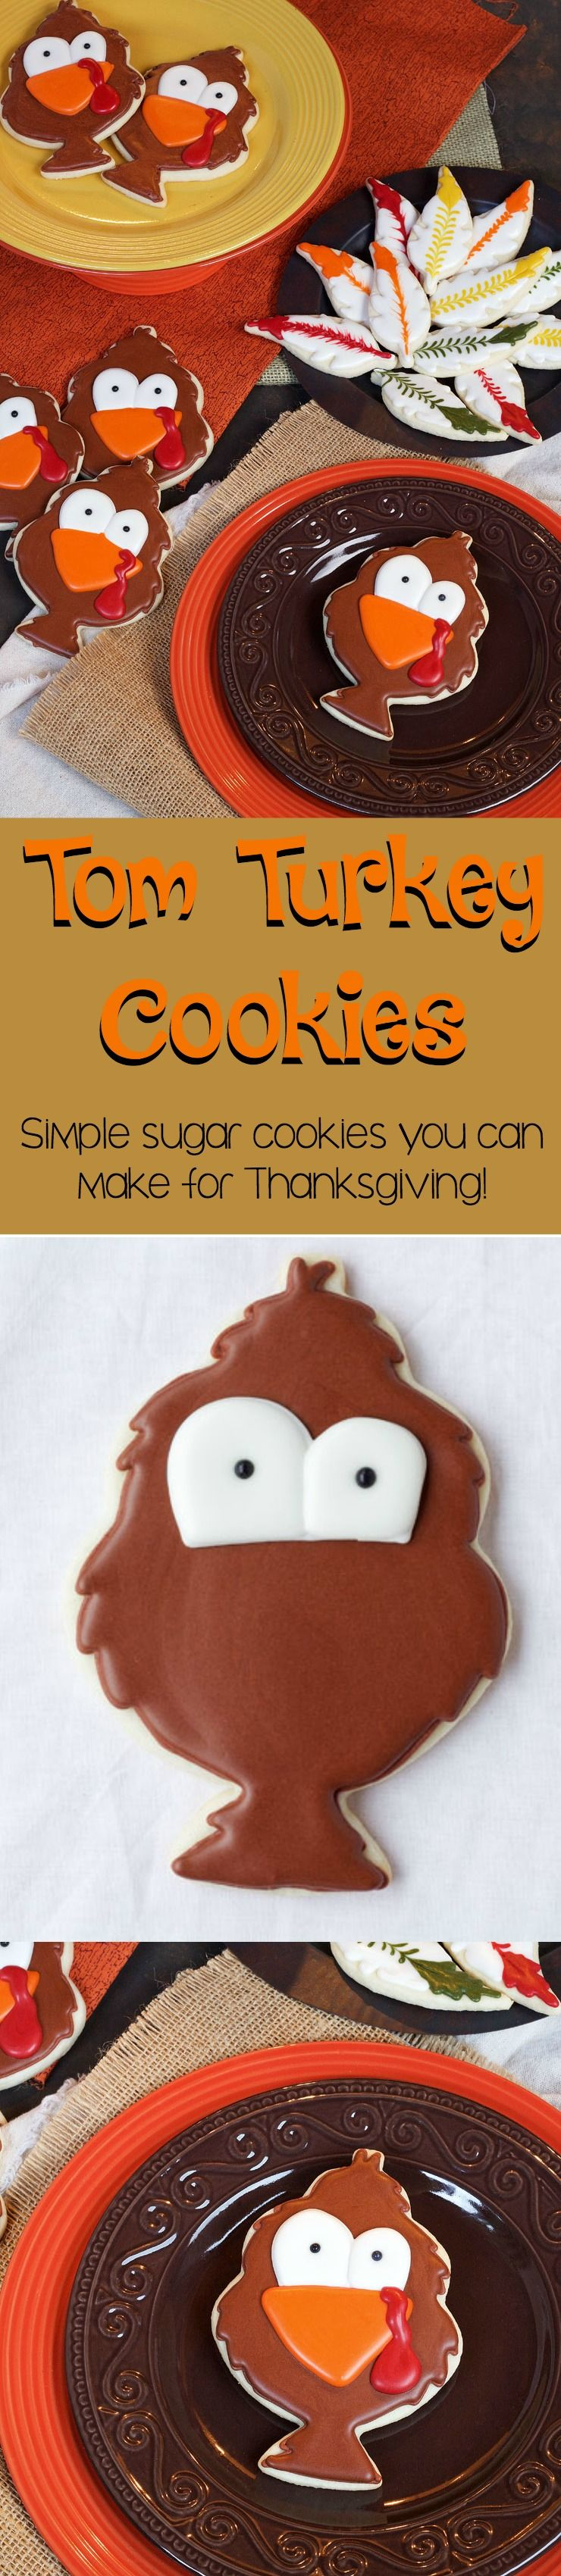 Tom Turkey Cookies for Thanksgiving | The Bearfoot Baker